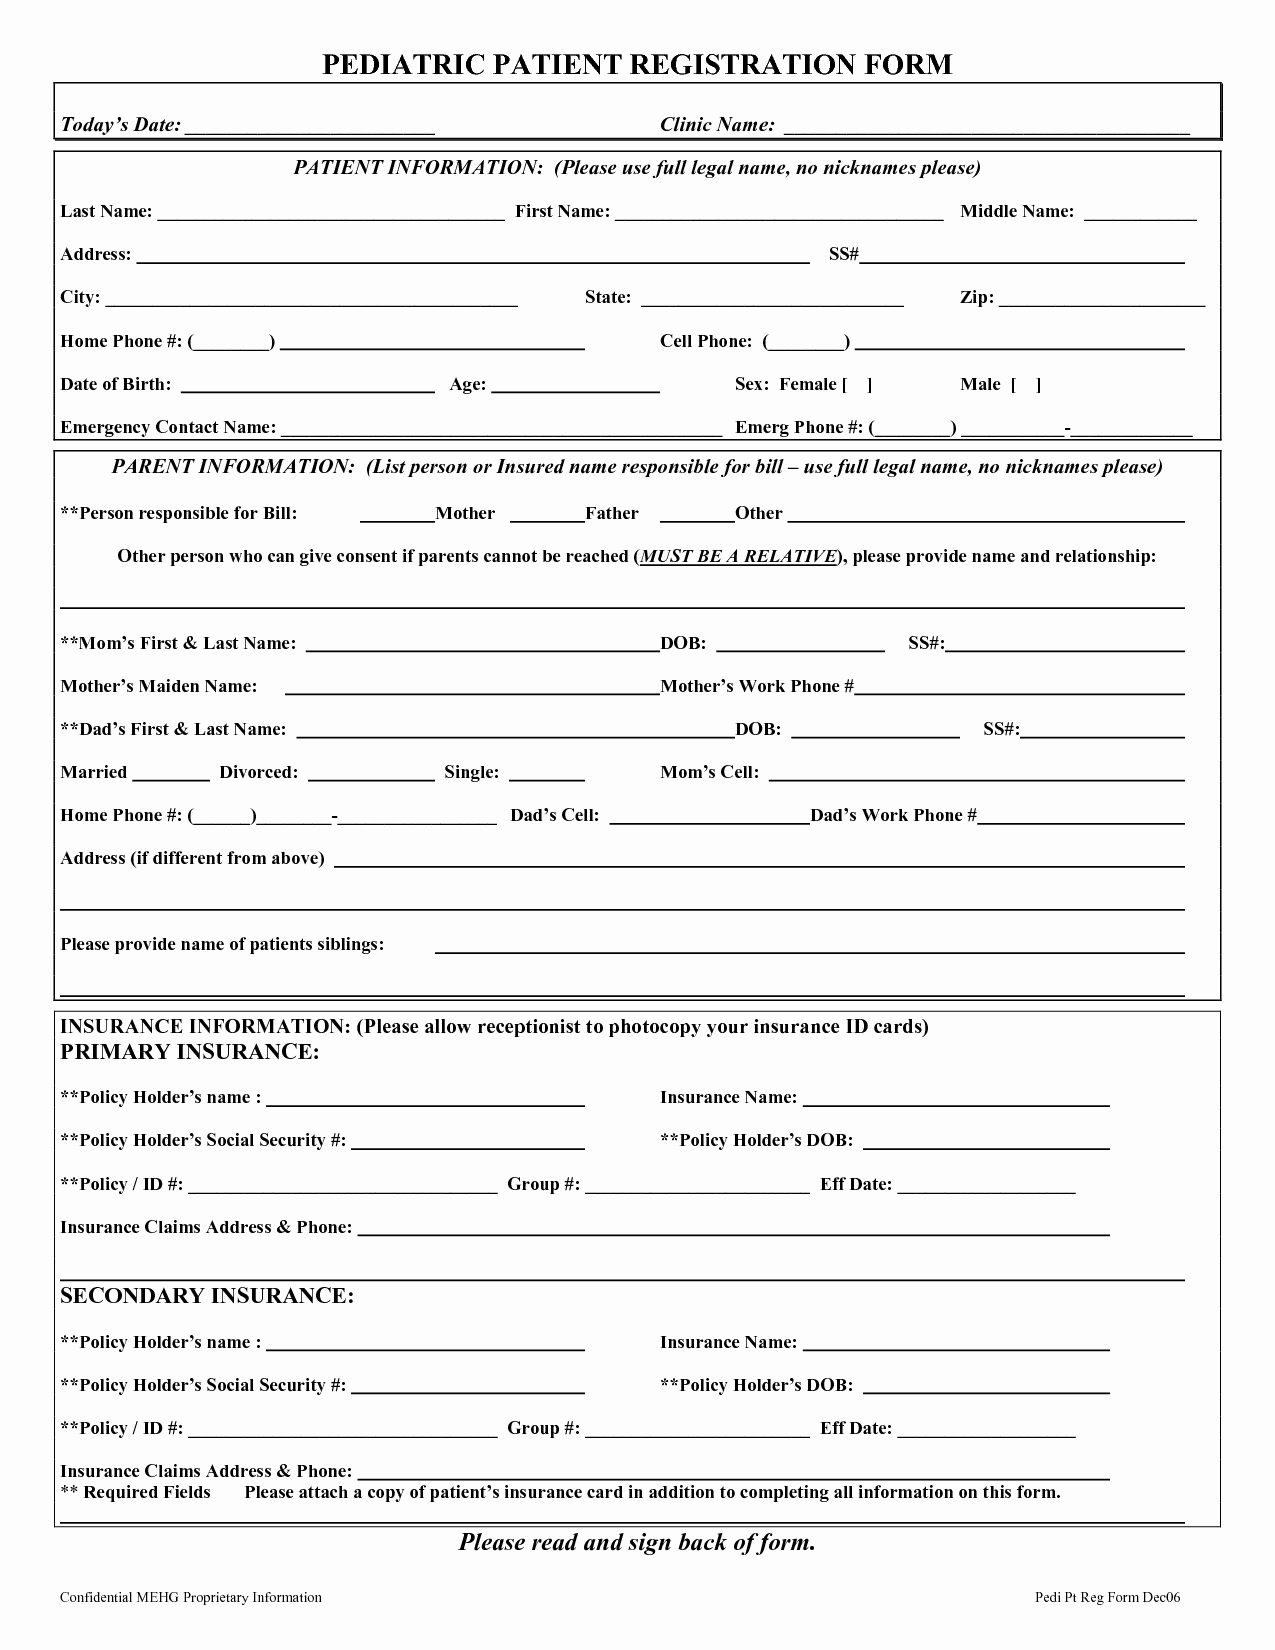 post printable patient registration forms